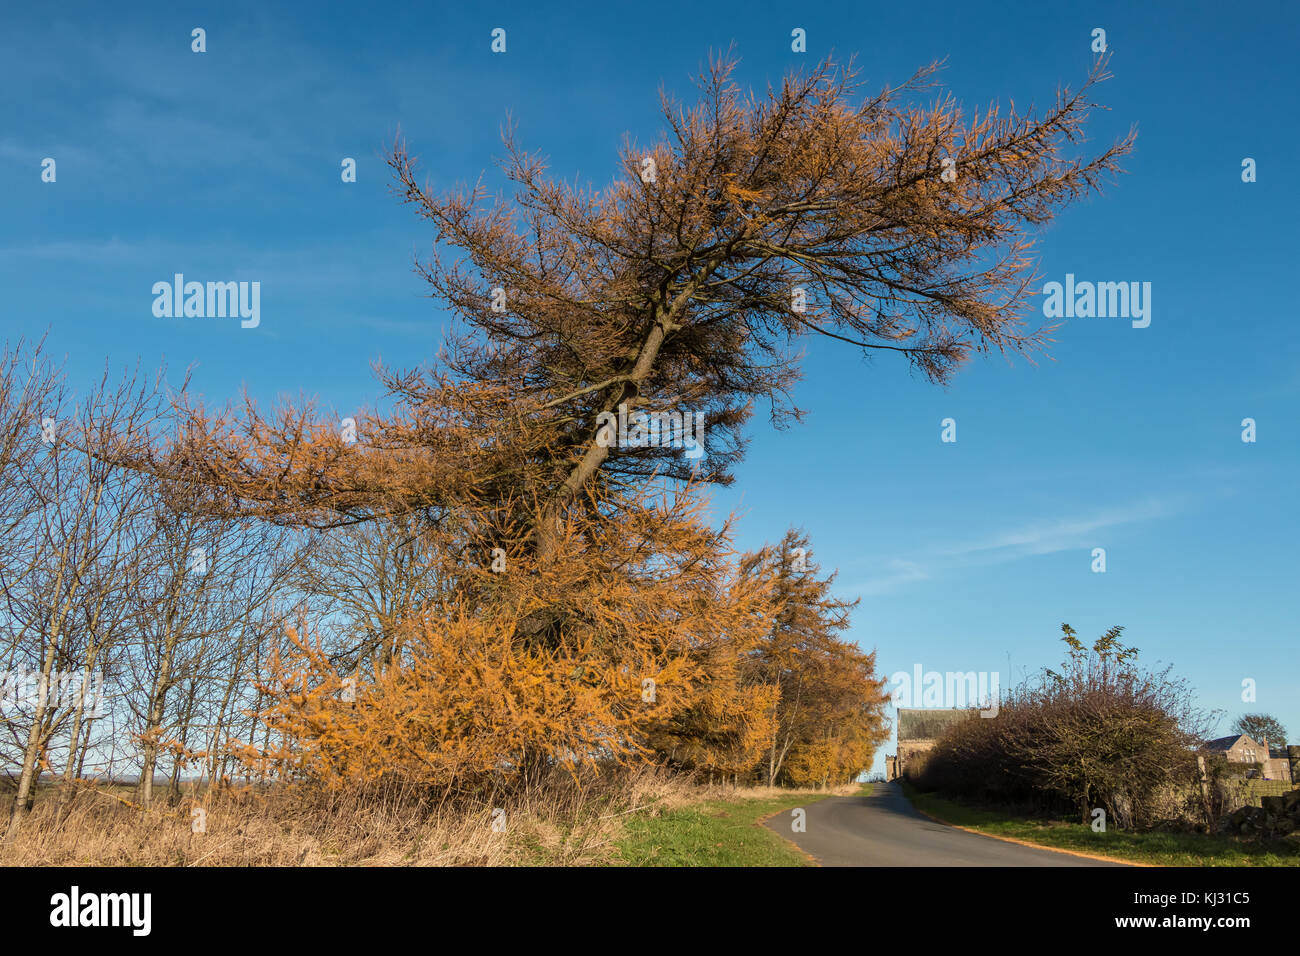 A row of European Larch trees in autumn gold colour against a clear blue sky, November 2017 with copy space - Stock Image